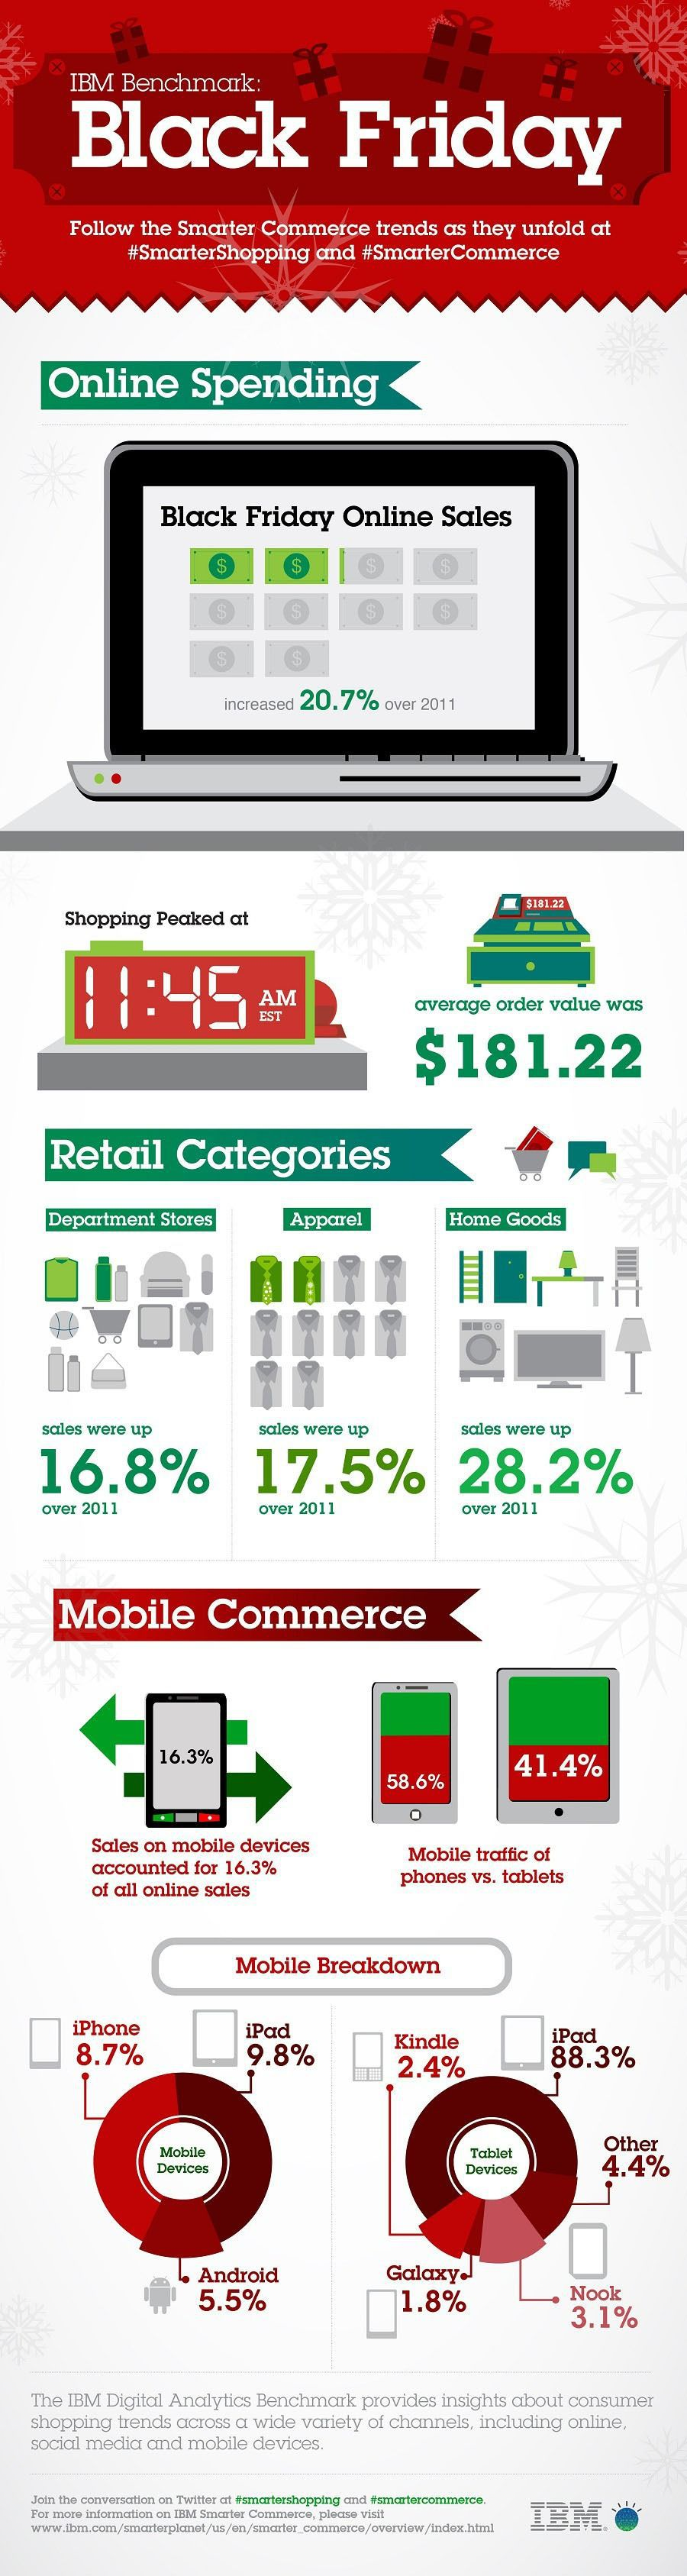 infographic - black friday 2012 mobile trends